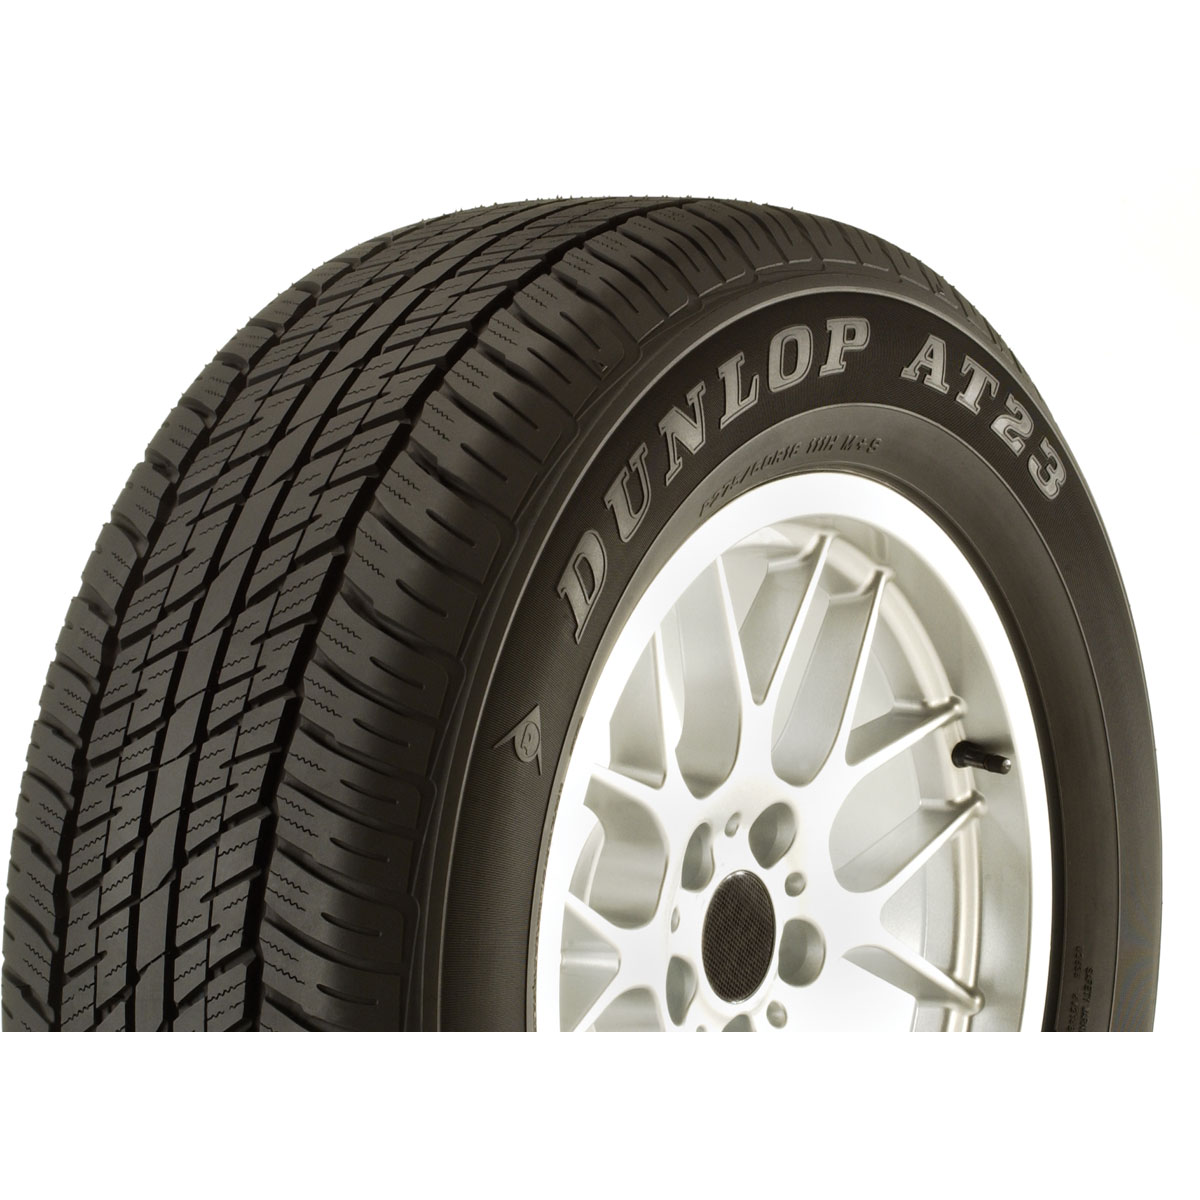 Dunlop Grandtrek AT 23 Tires